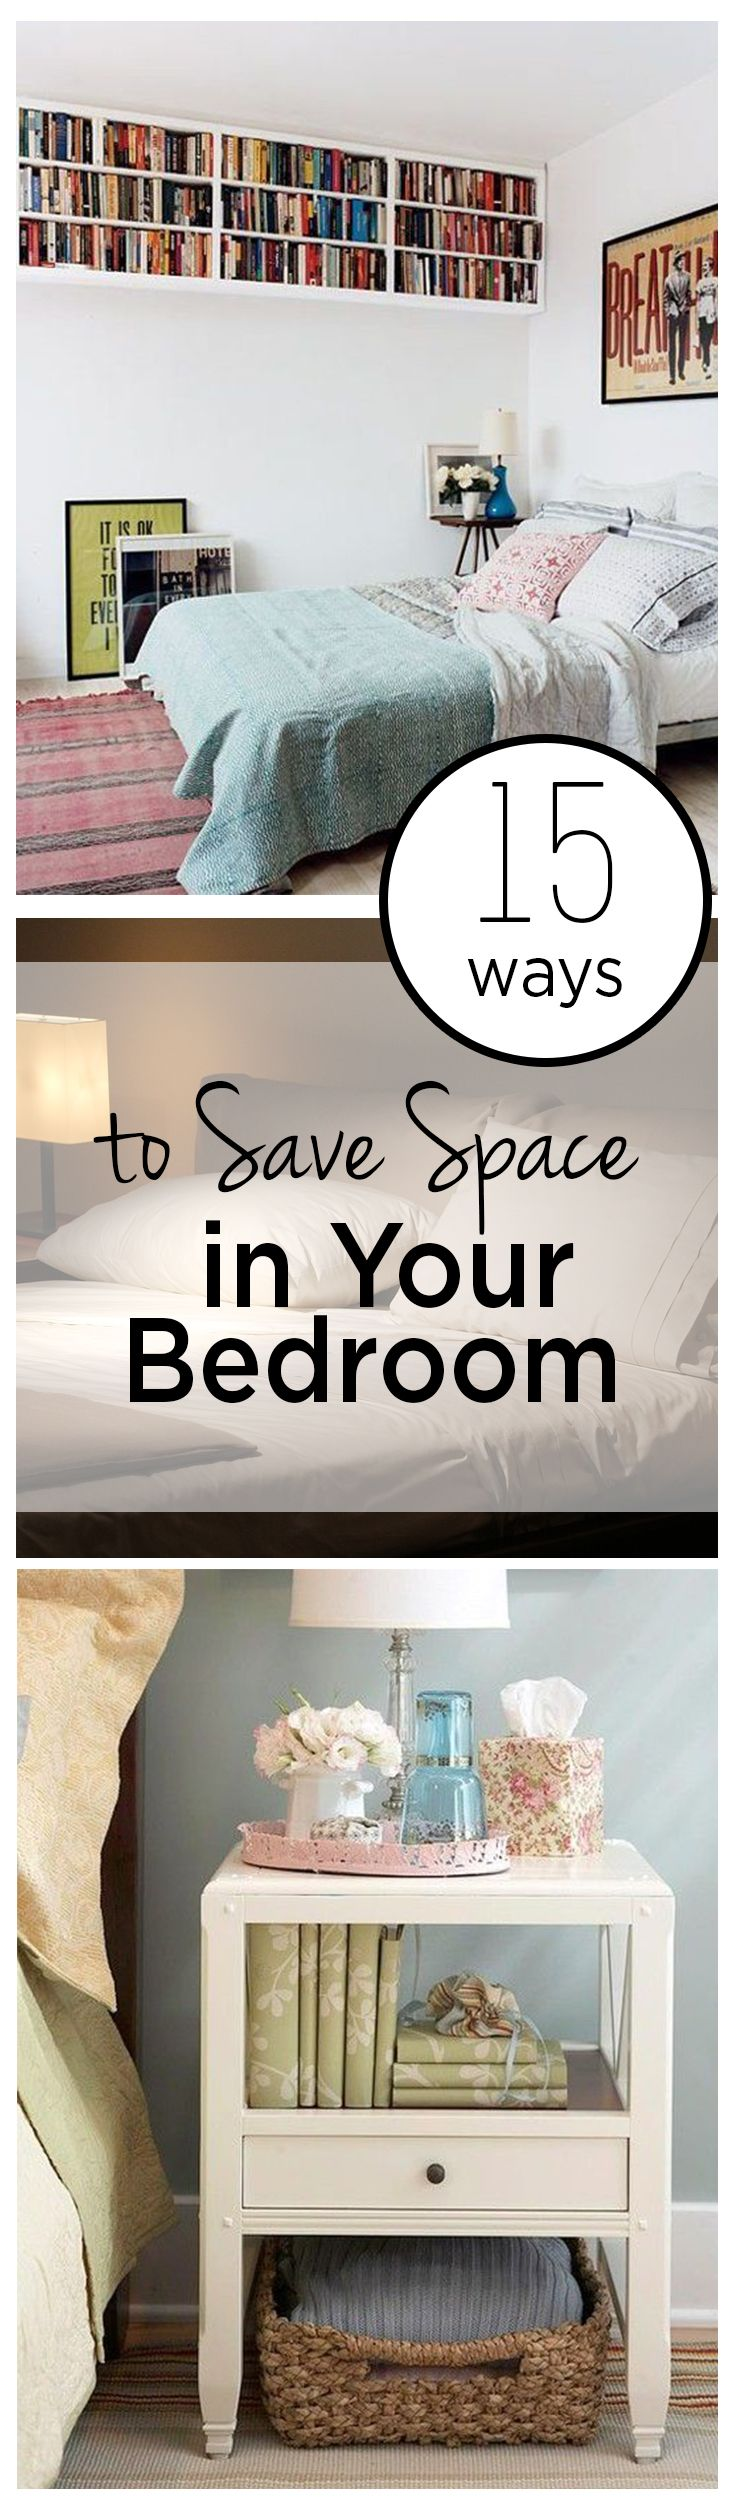 15 Ways to Save Space in Your Bedroom | Diy bedroom, Bedroom ...